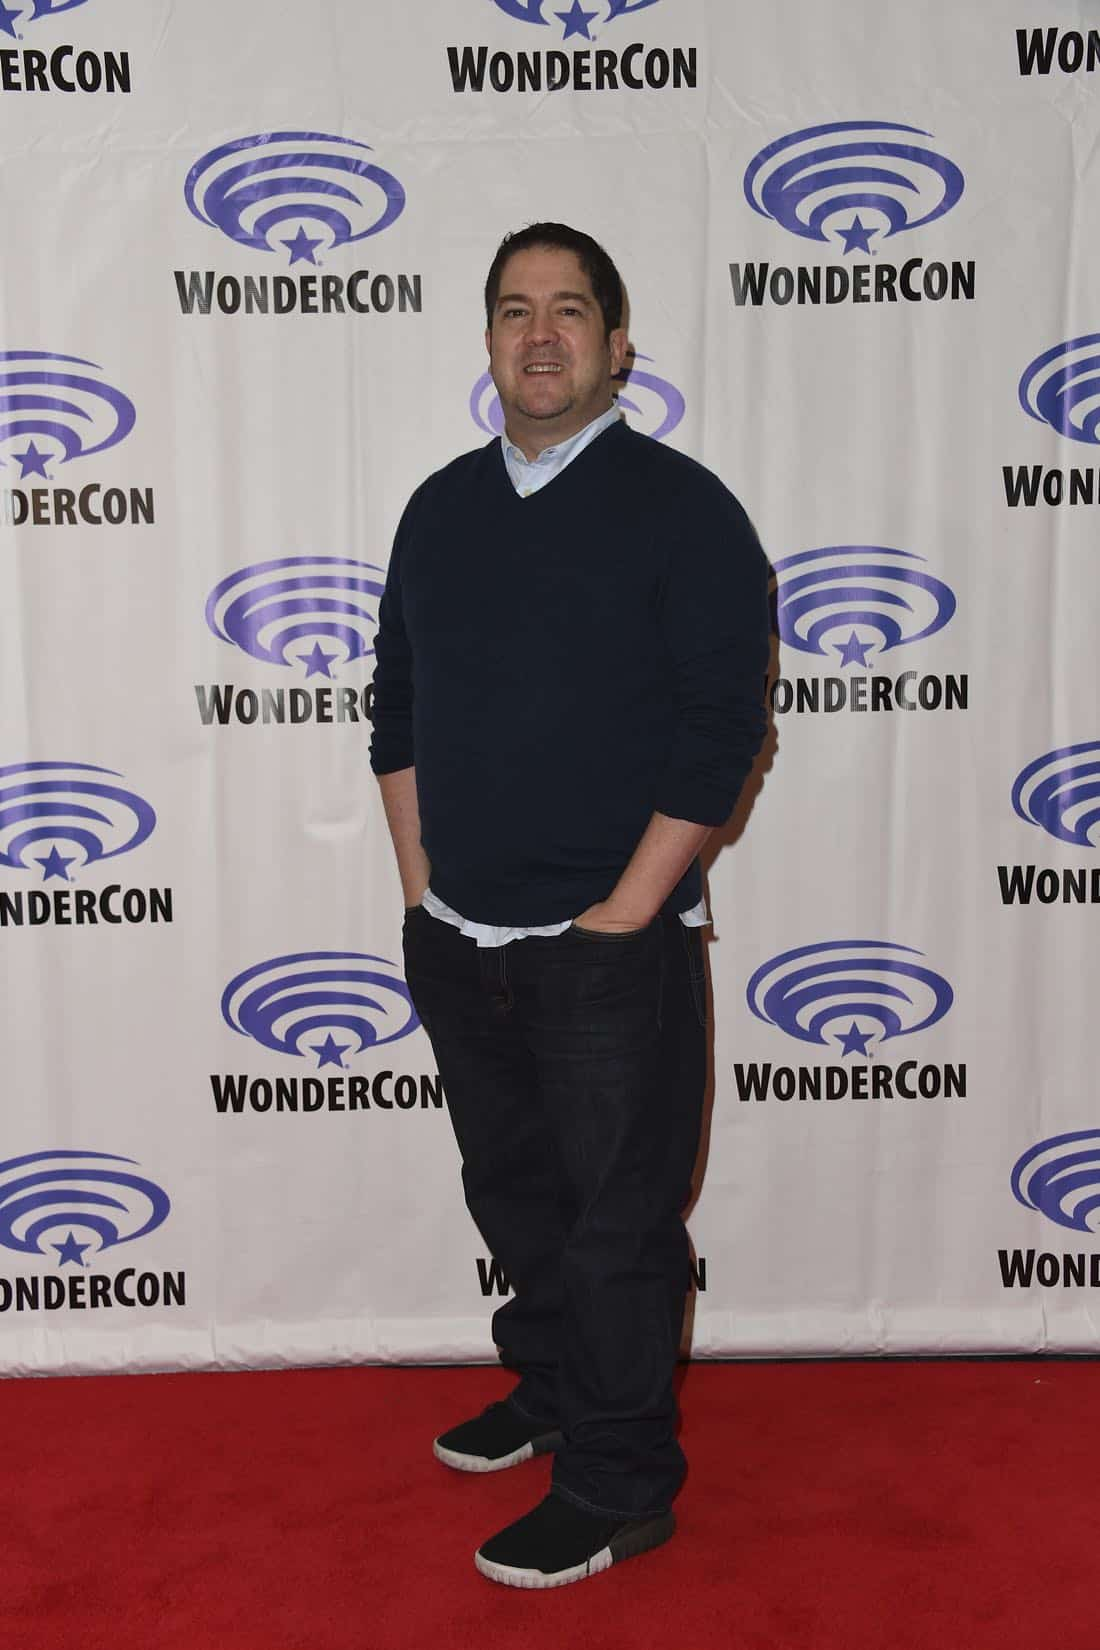 """MARVEL'S CLOAK & DAGGER - The executive producers and cast of Freeform's highly-anticipated new original series """"Marvel's Cloak & Dagger"""" attended WonderCon to promote the June 7th premiere. (Freeform/Aaron Poole) JOE POKASKI (EXECUTIVE PRODUCER)"""